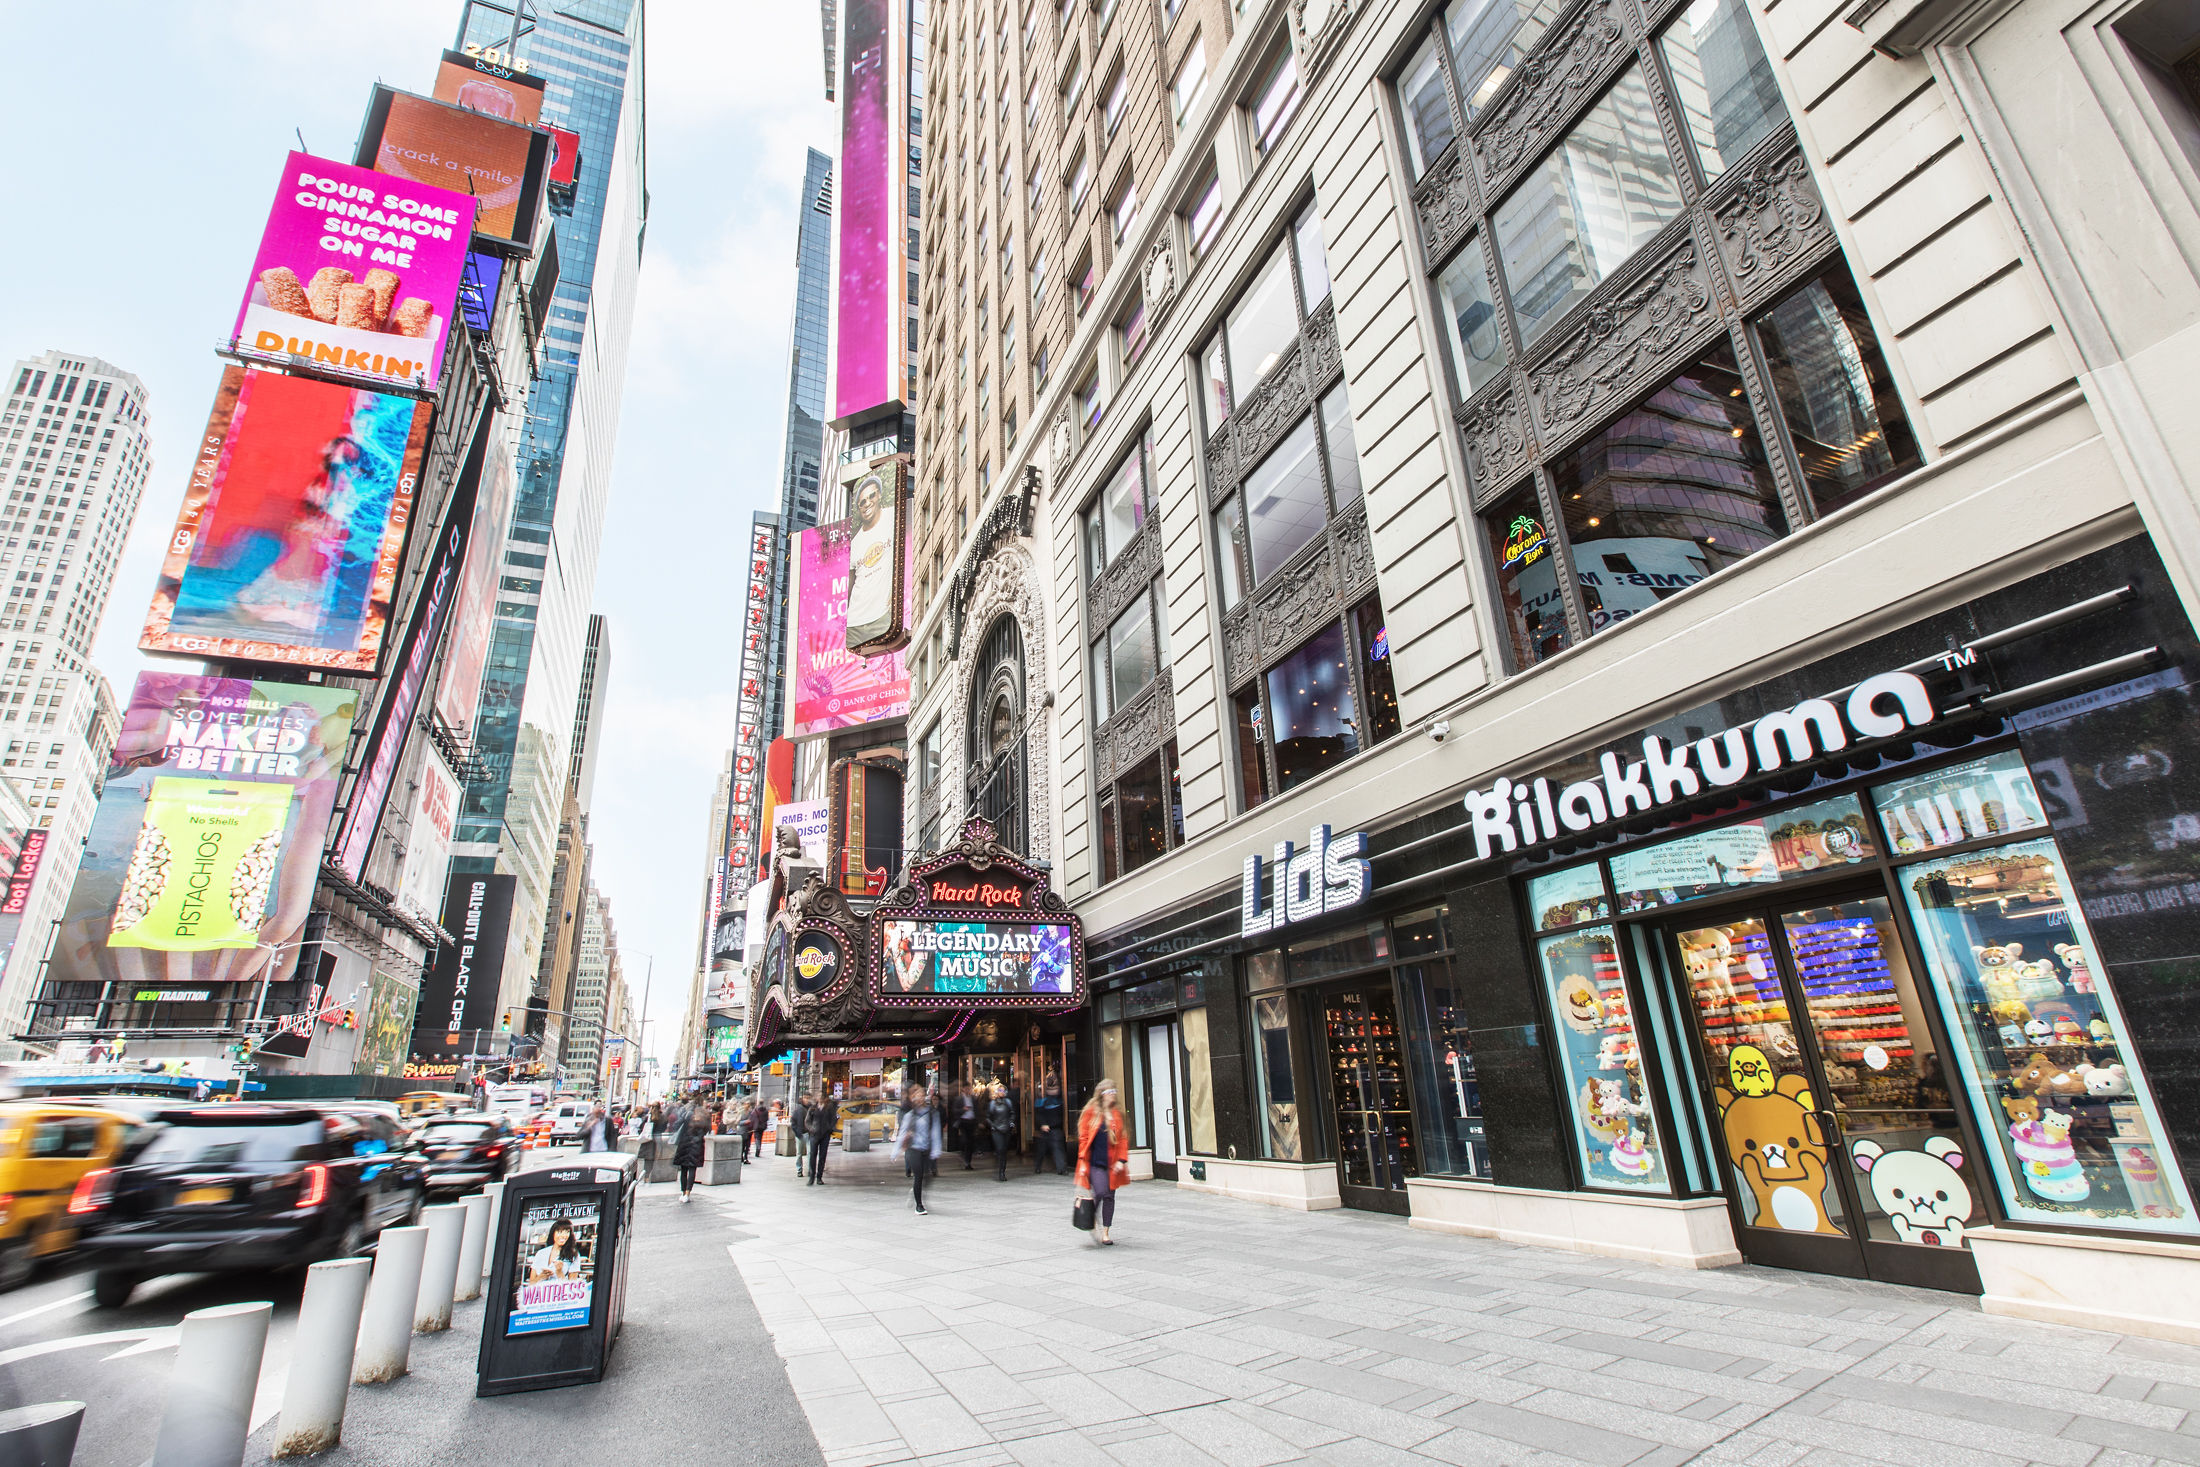 View of Times Square in New York with the front of the Rilakkuma Pop-up shop.